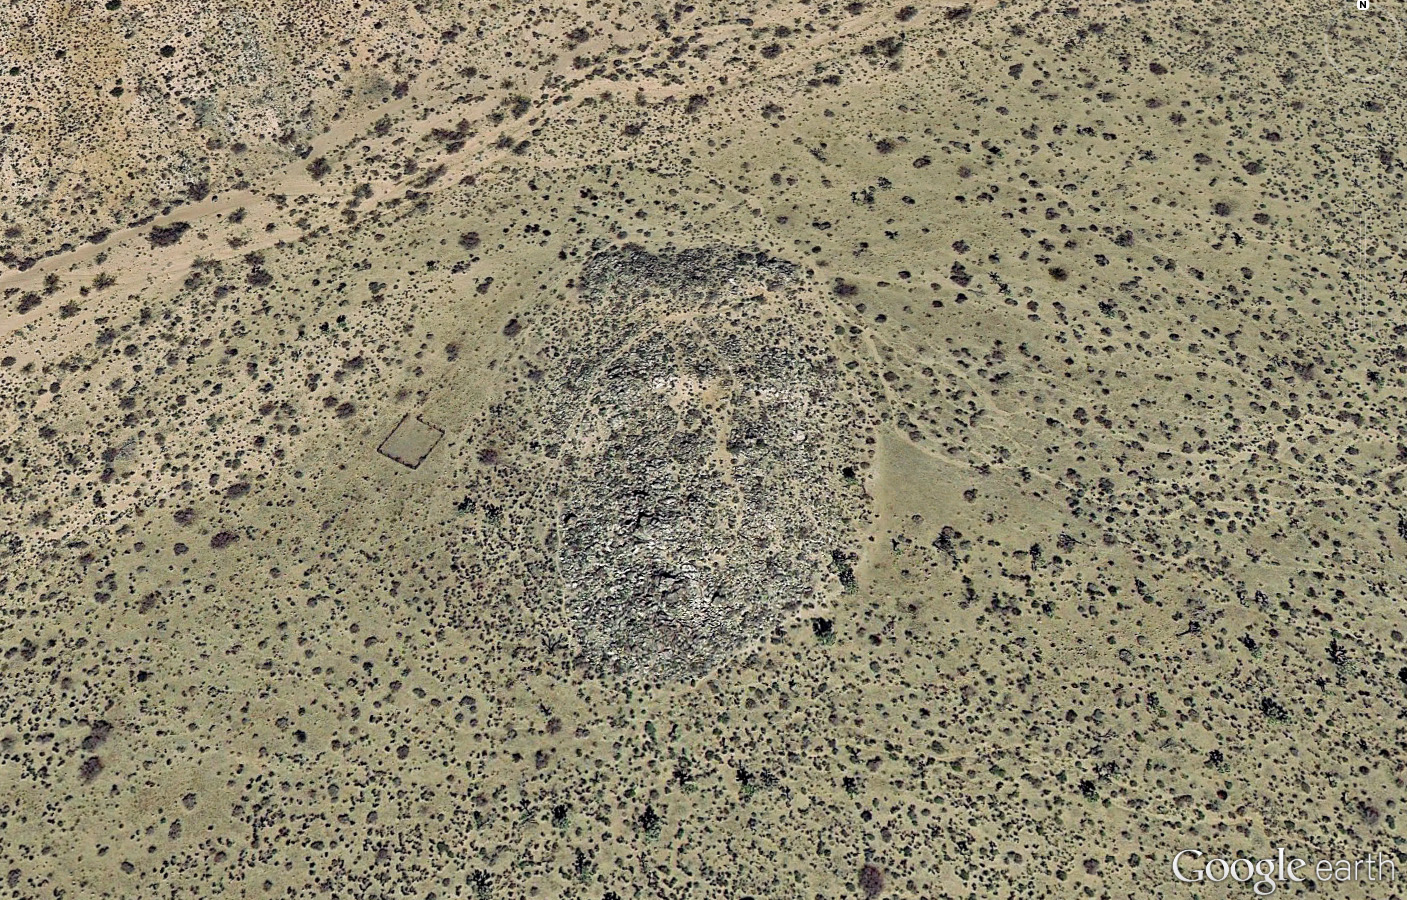 Samuelson's Rocks - Space View